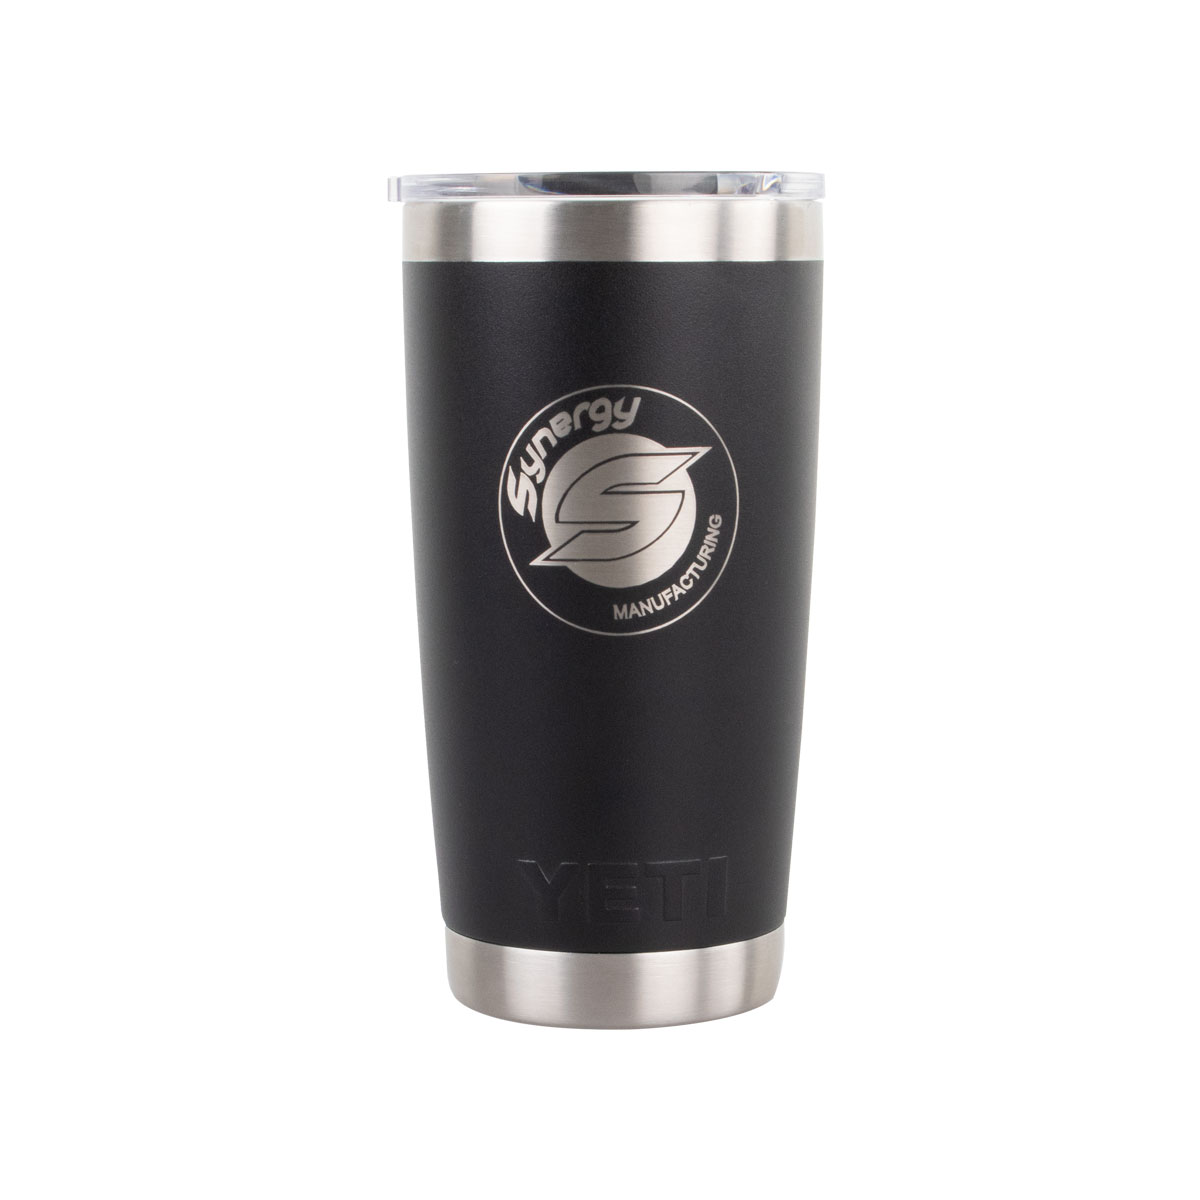 Synergy Branded 20 oz. YETI Tumbler with MagSlider Lid